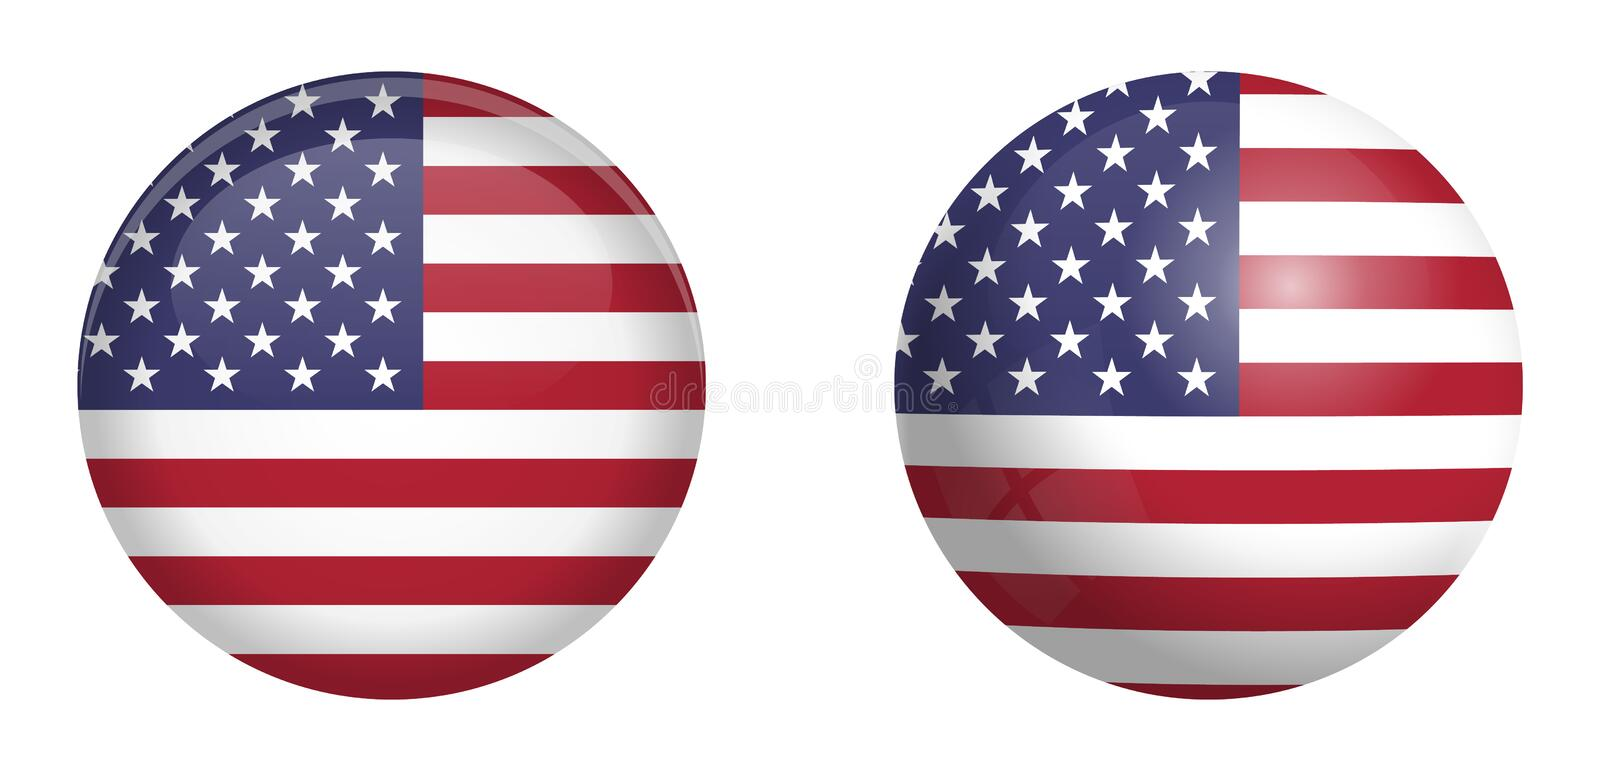 United States of America flag under 3d dome button and on glossy sphere / ball stock illustration